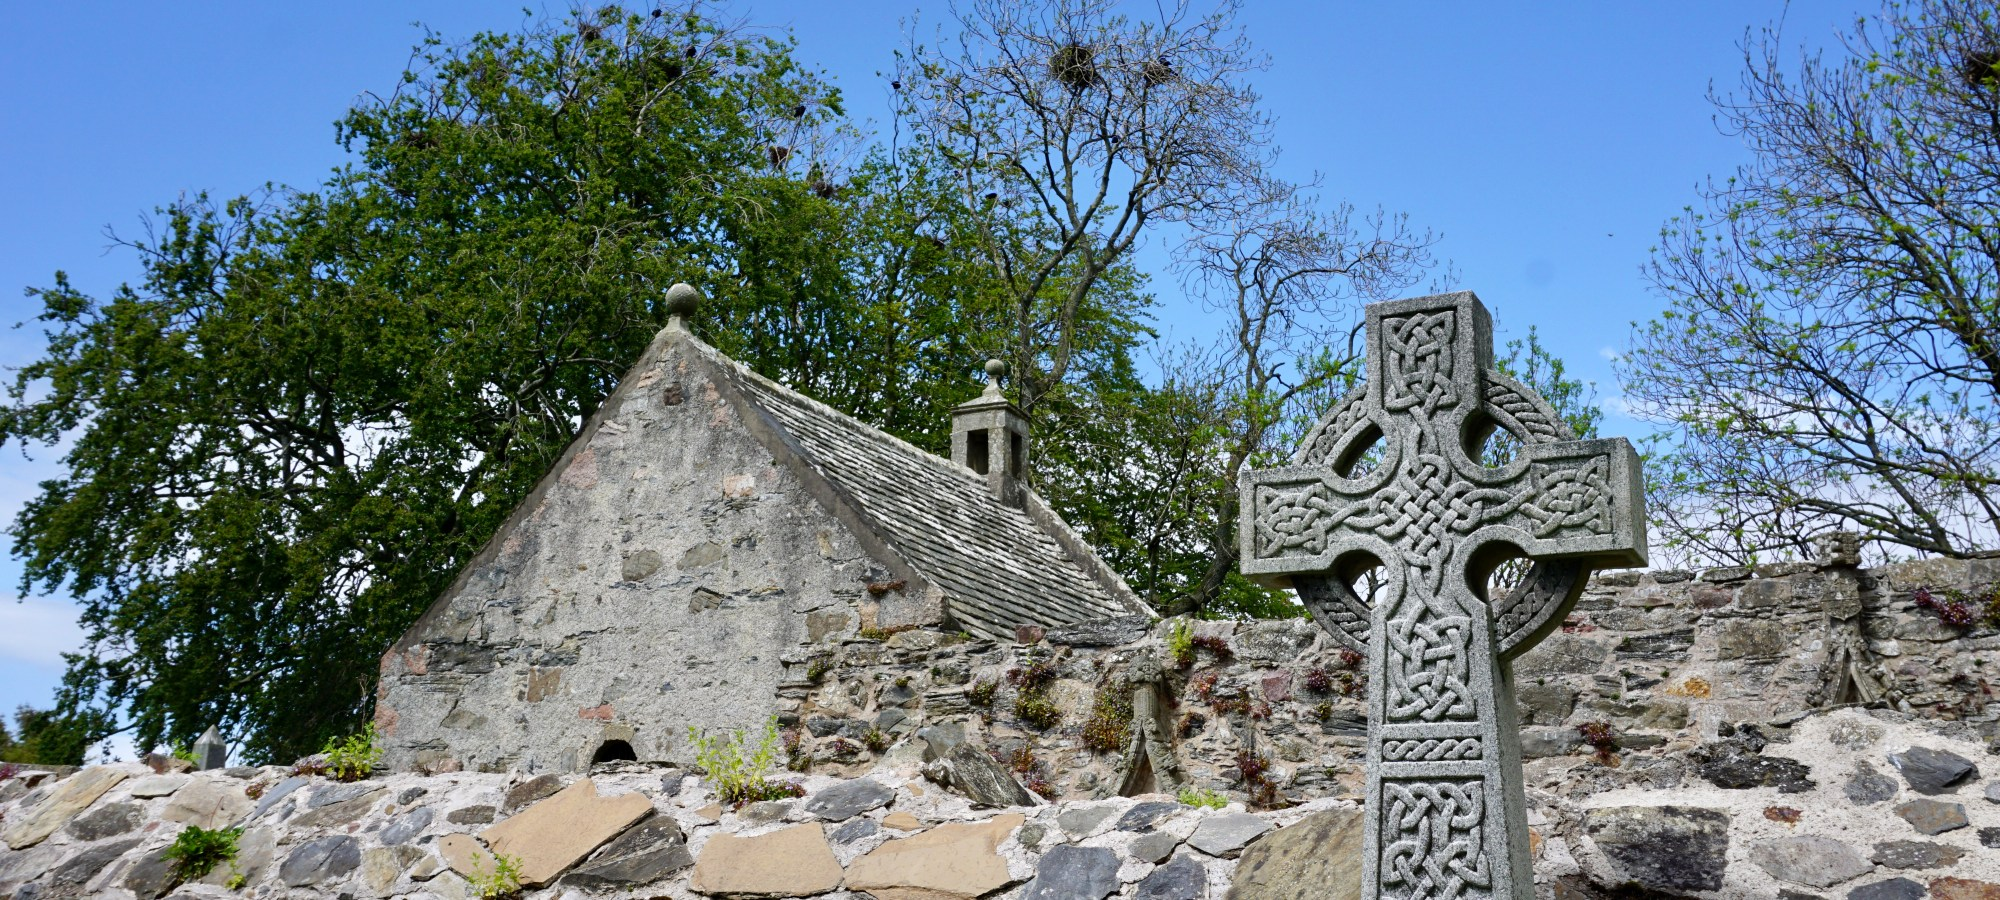 A celtic cross in front of a stone wall and stone building.